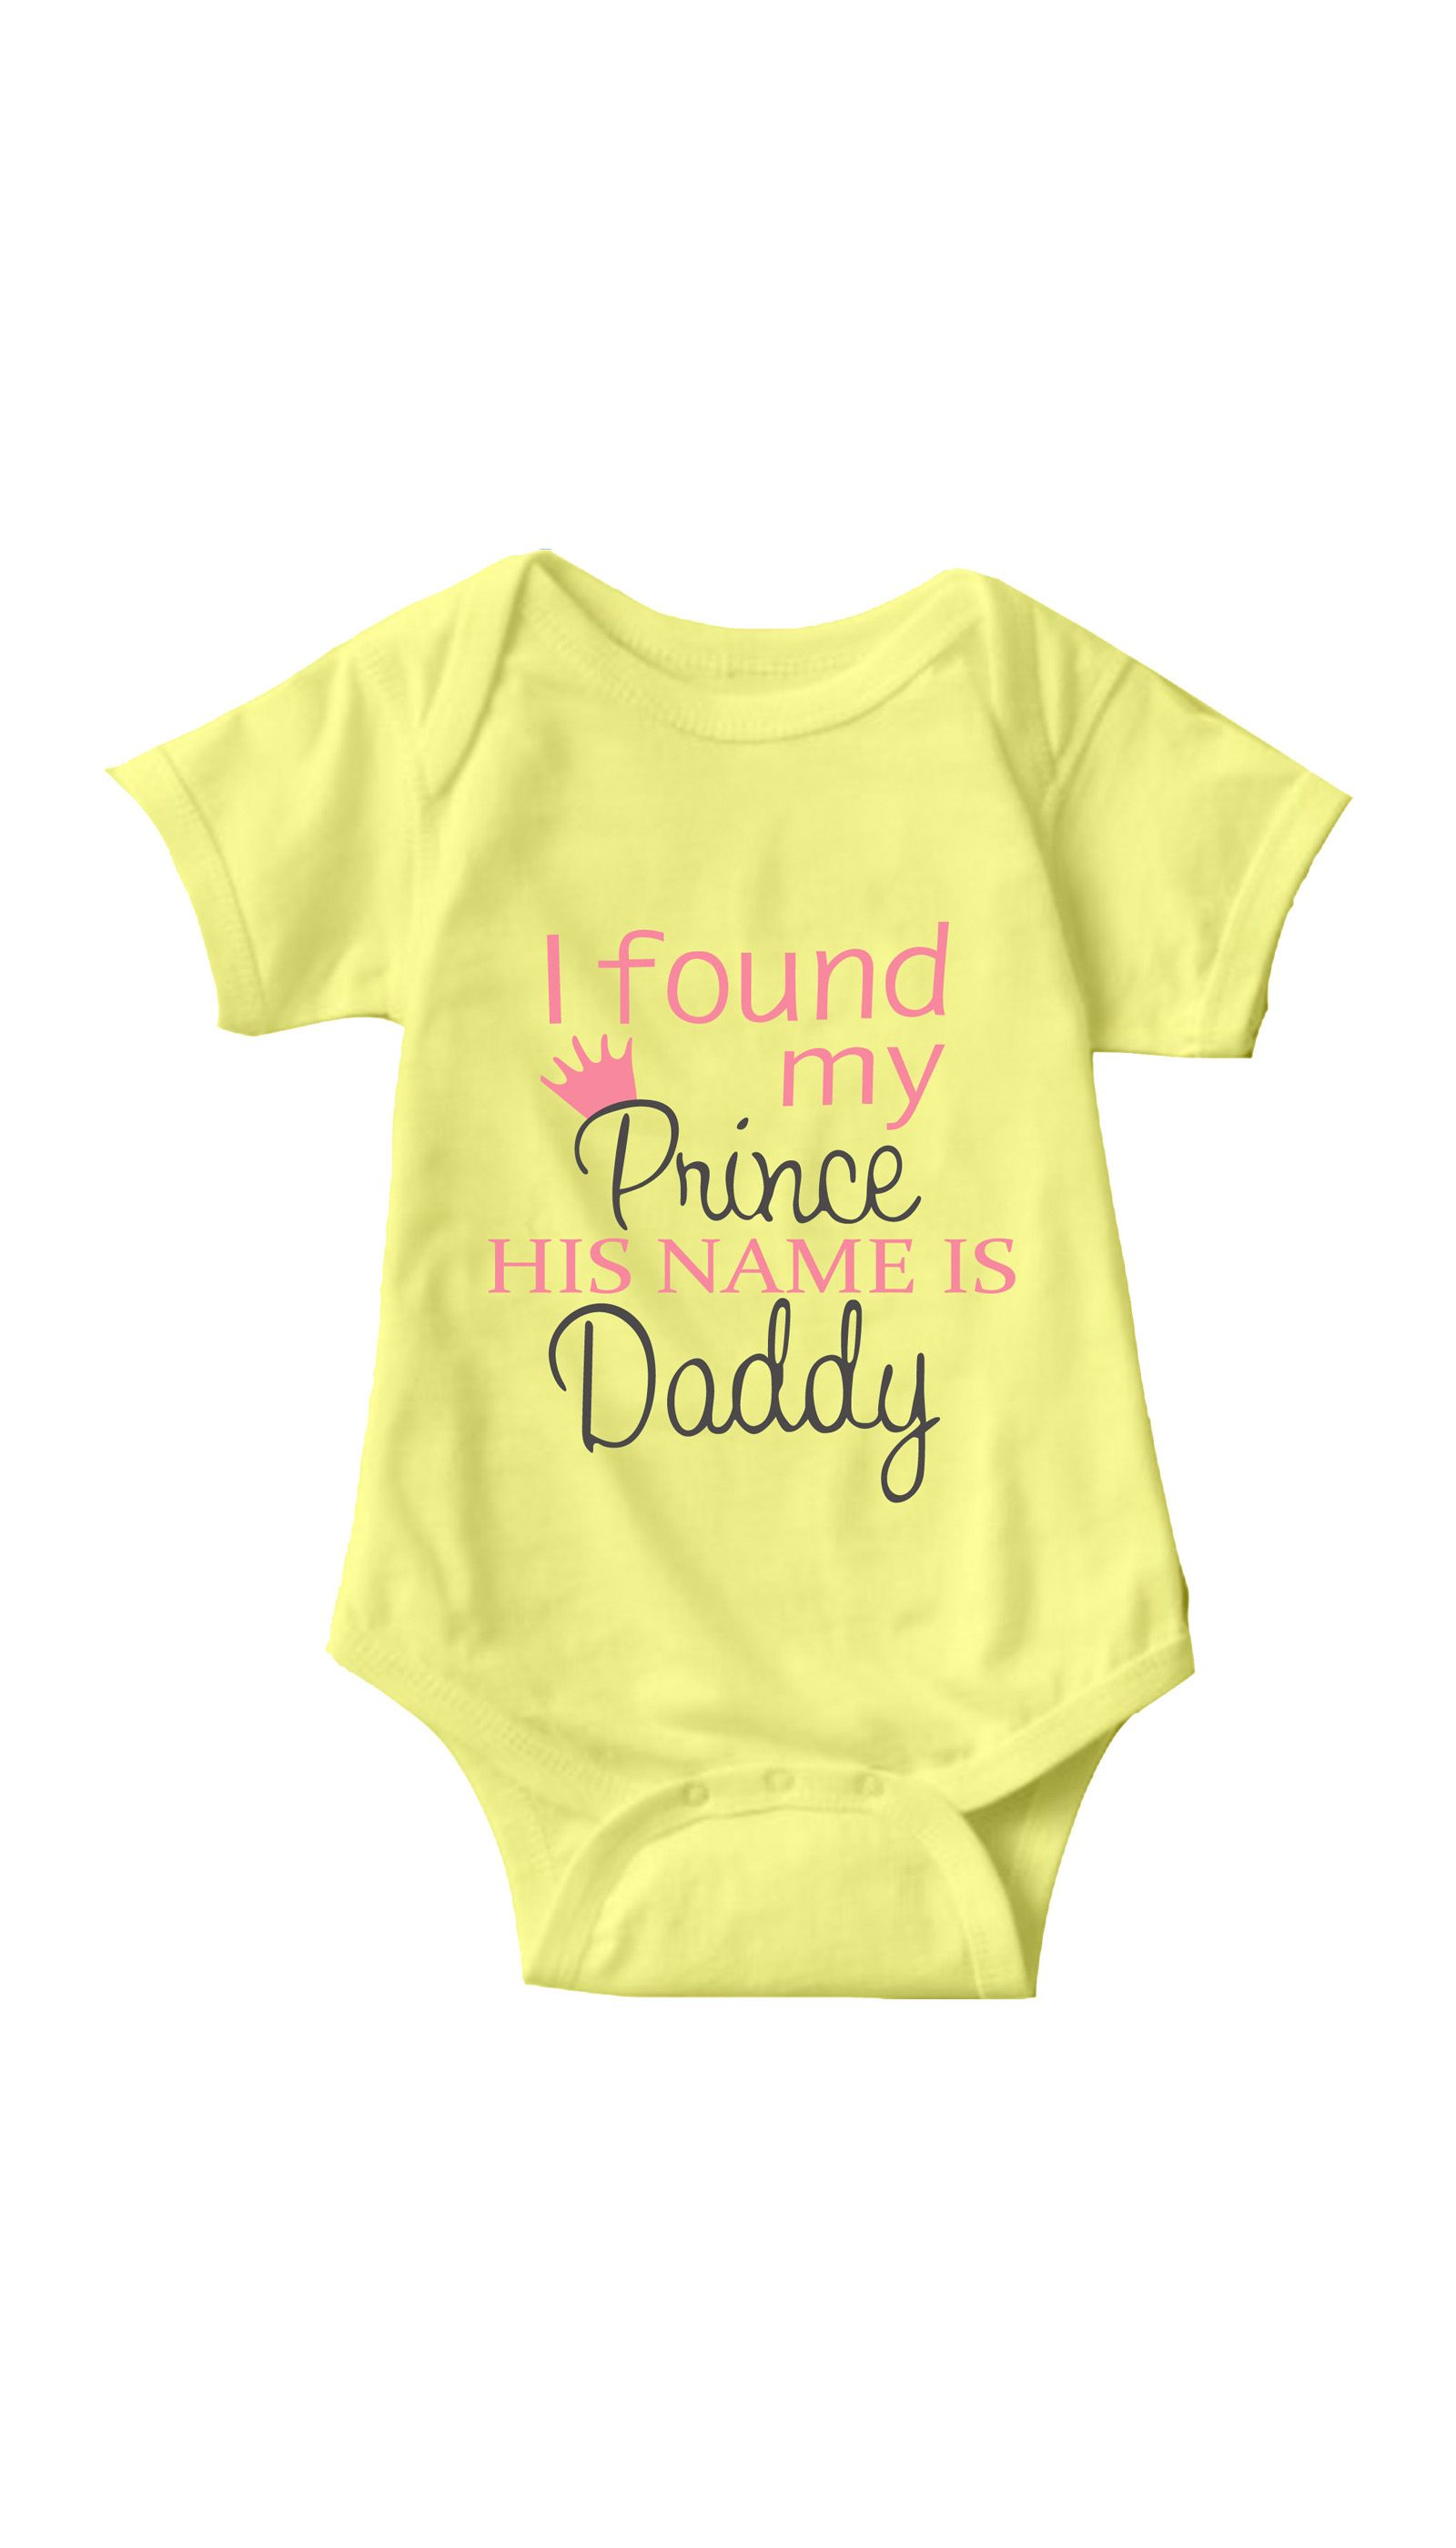 I Found My Prince His Name Is Daddy Long Sleeve Baby Vests Bodysuit Unisex White